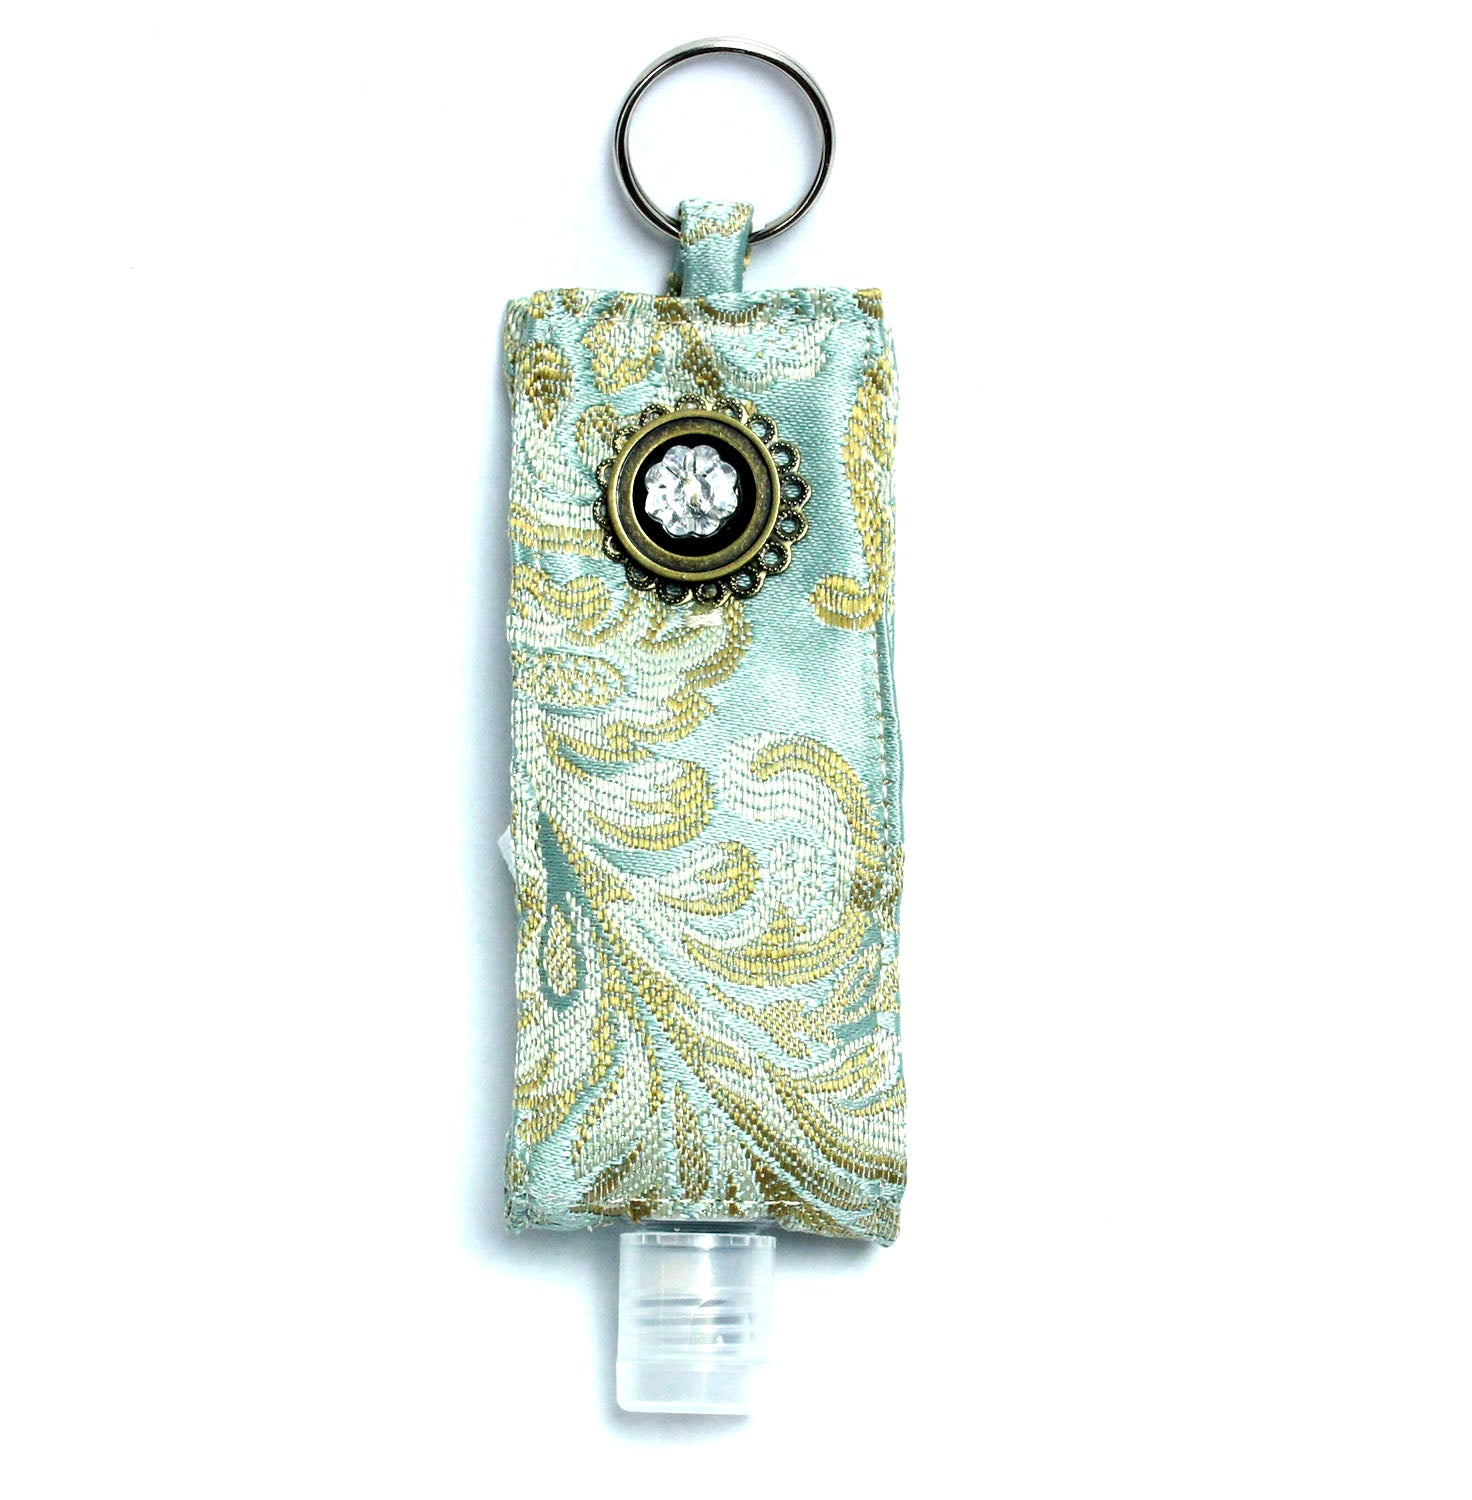 Hand Sanitizer Holder - Digital Pattern